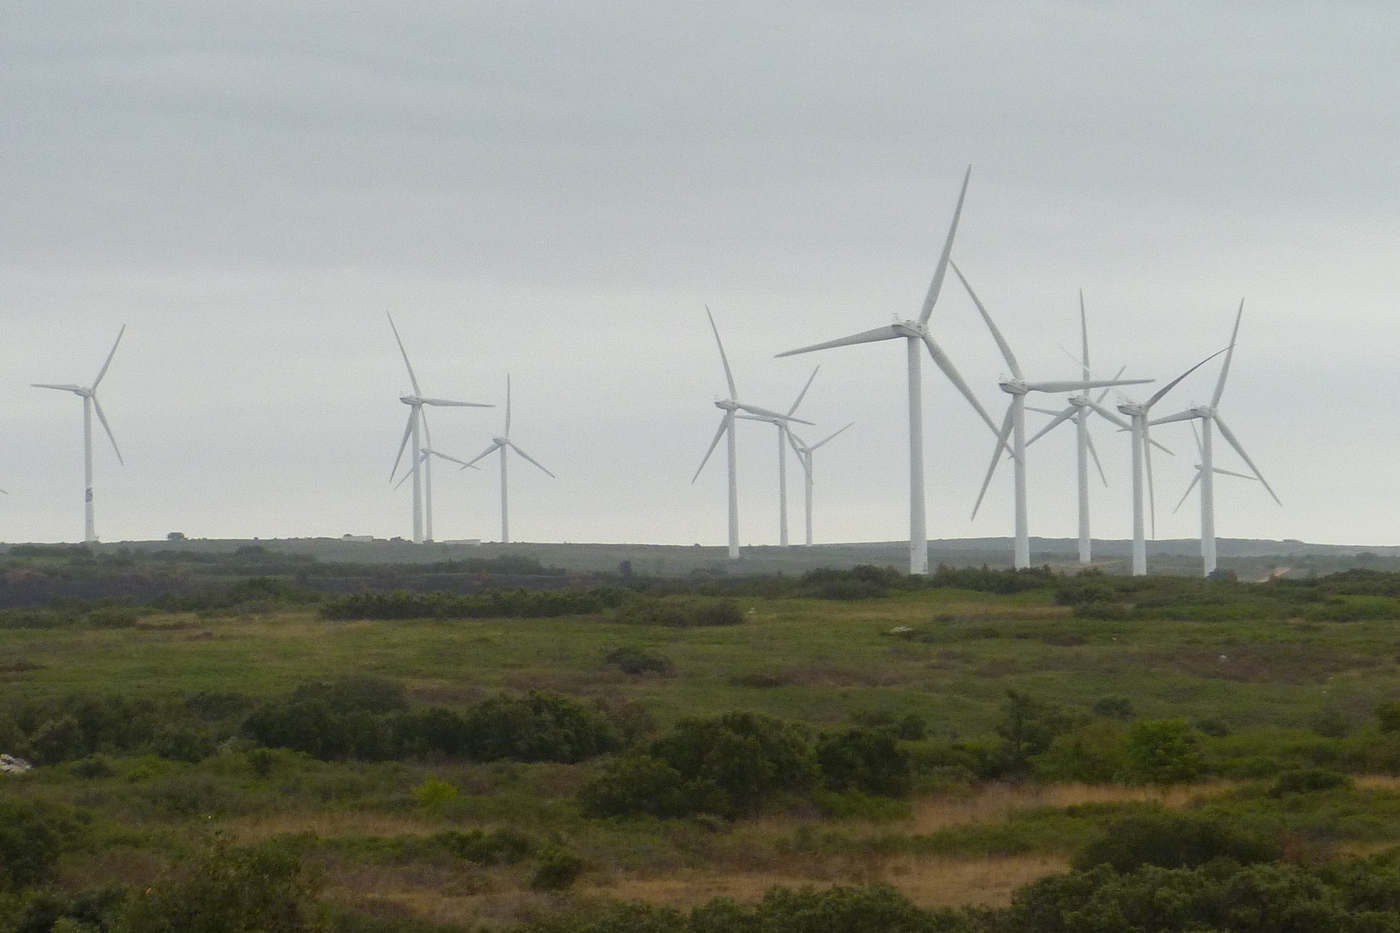 Wind farm in Aumelas, Herault, France